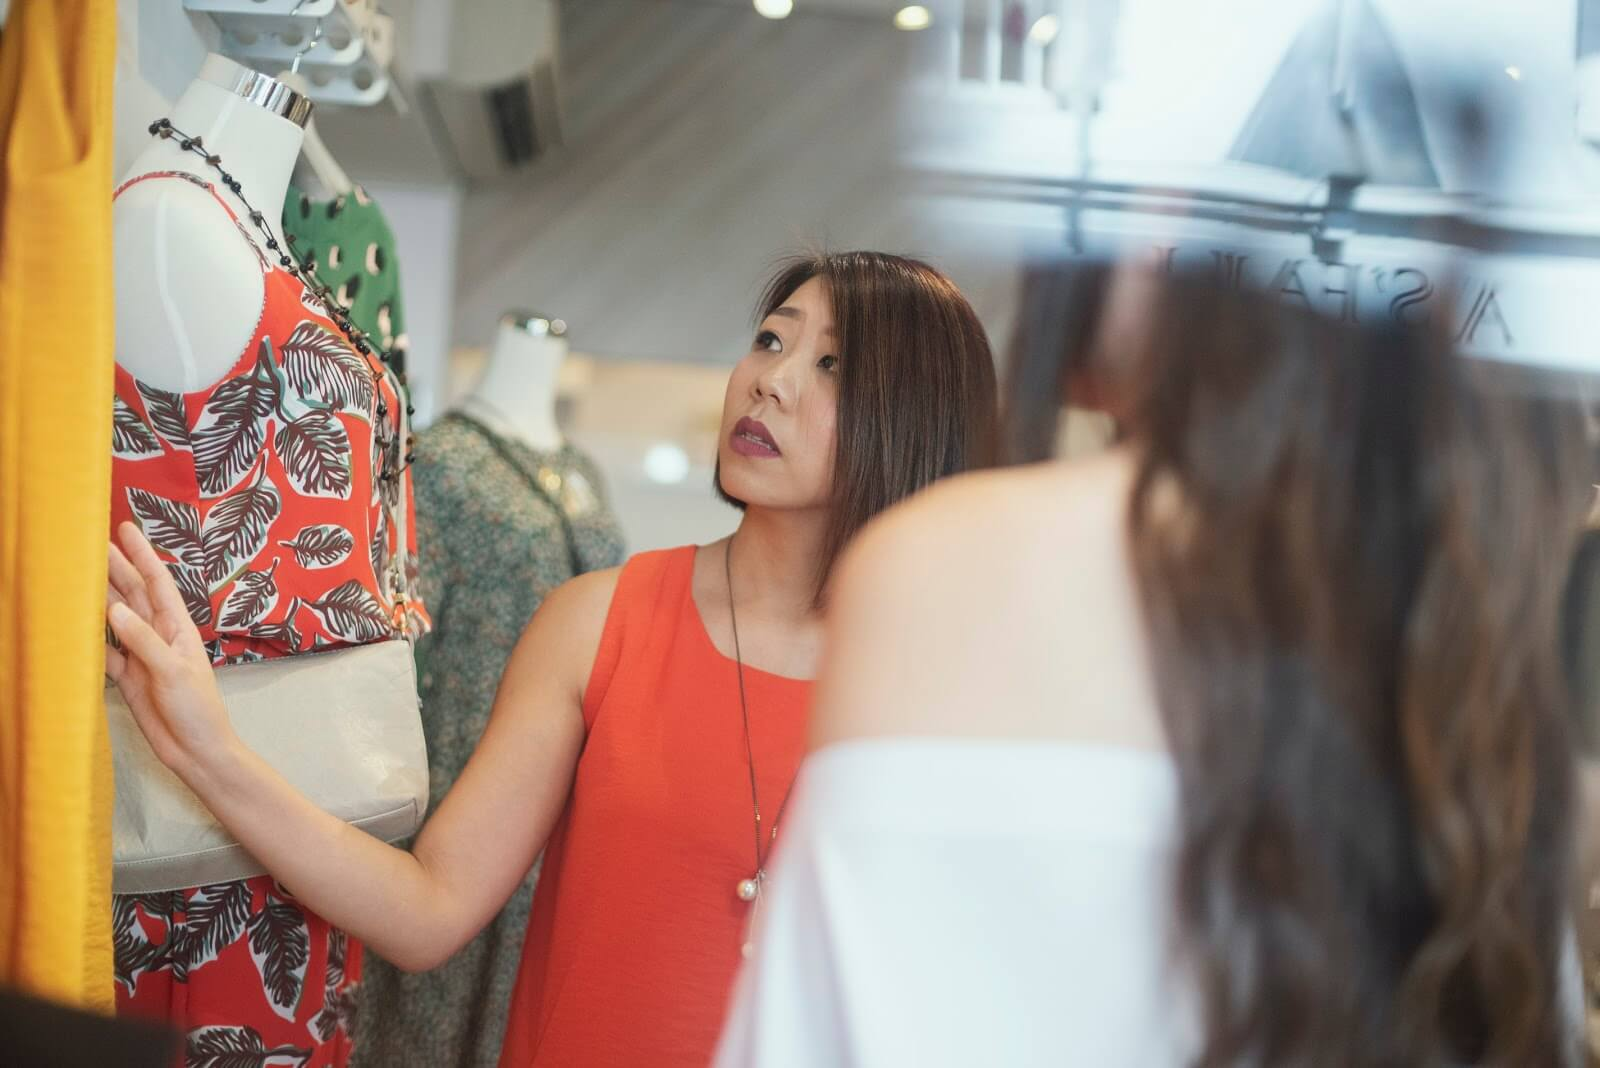 eCommerce POS Integration: A retail store owner is working on the clothing displays in her store.